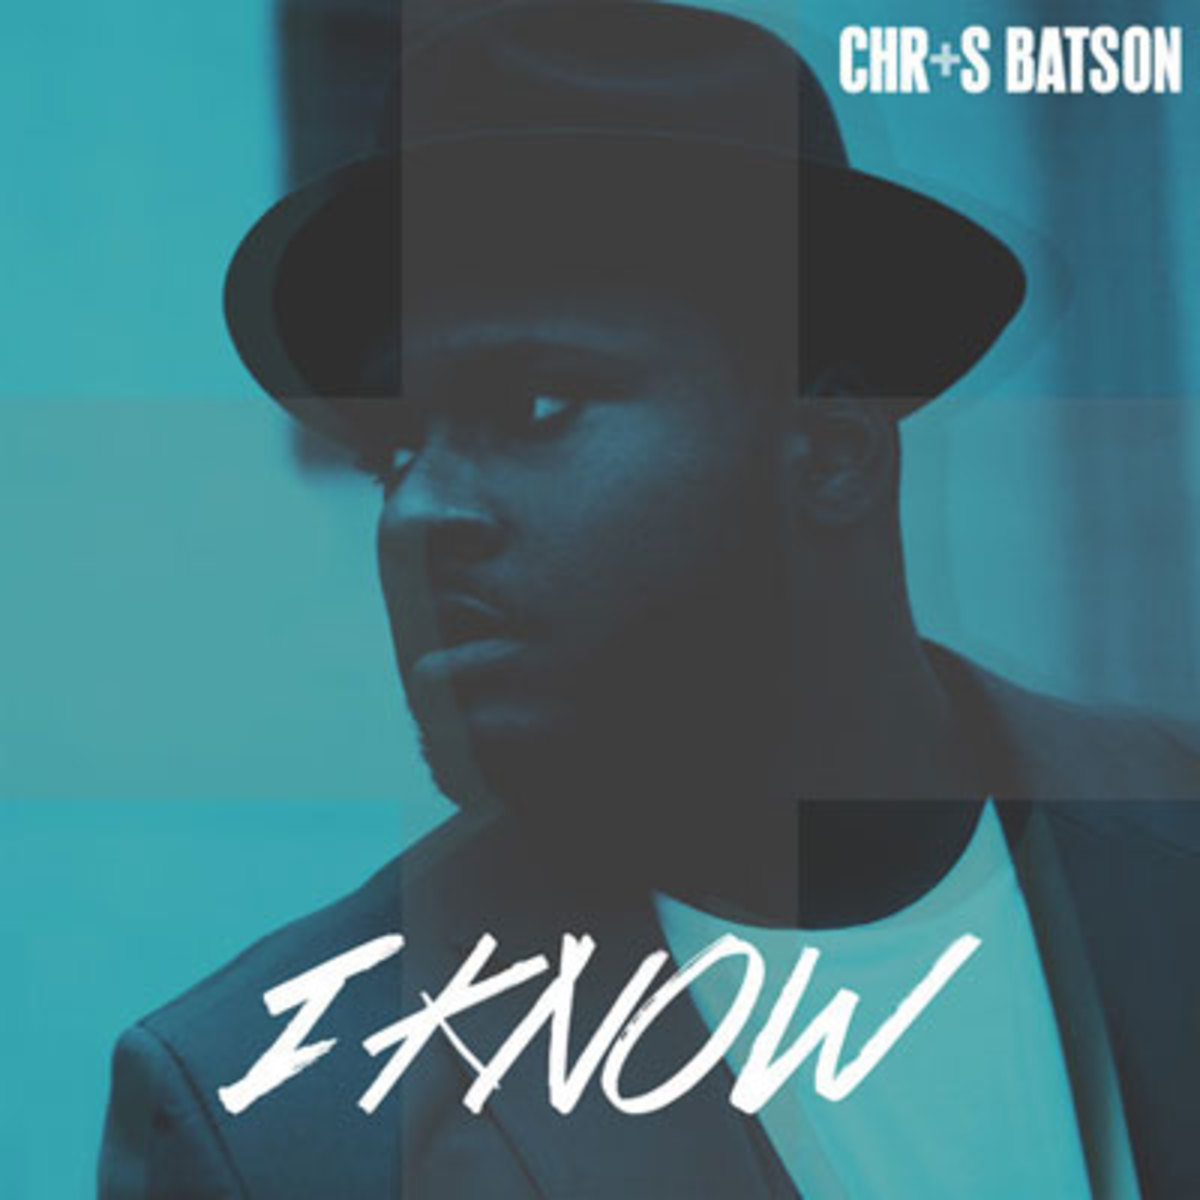 cbaston-iknow.jpg